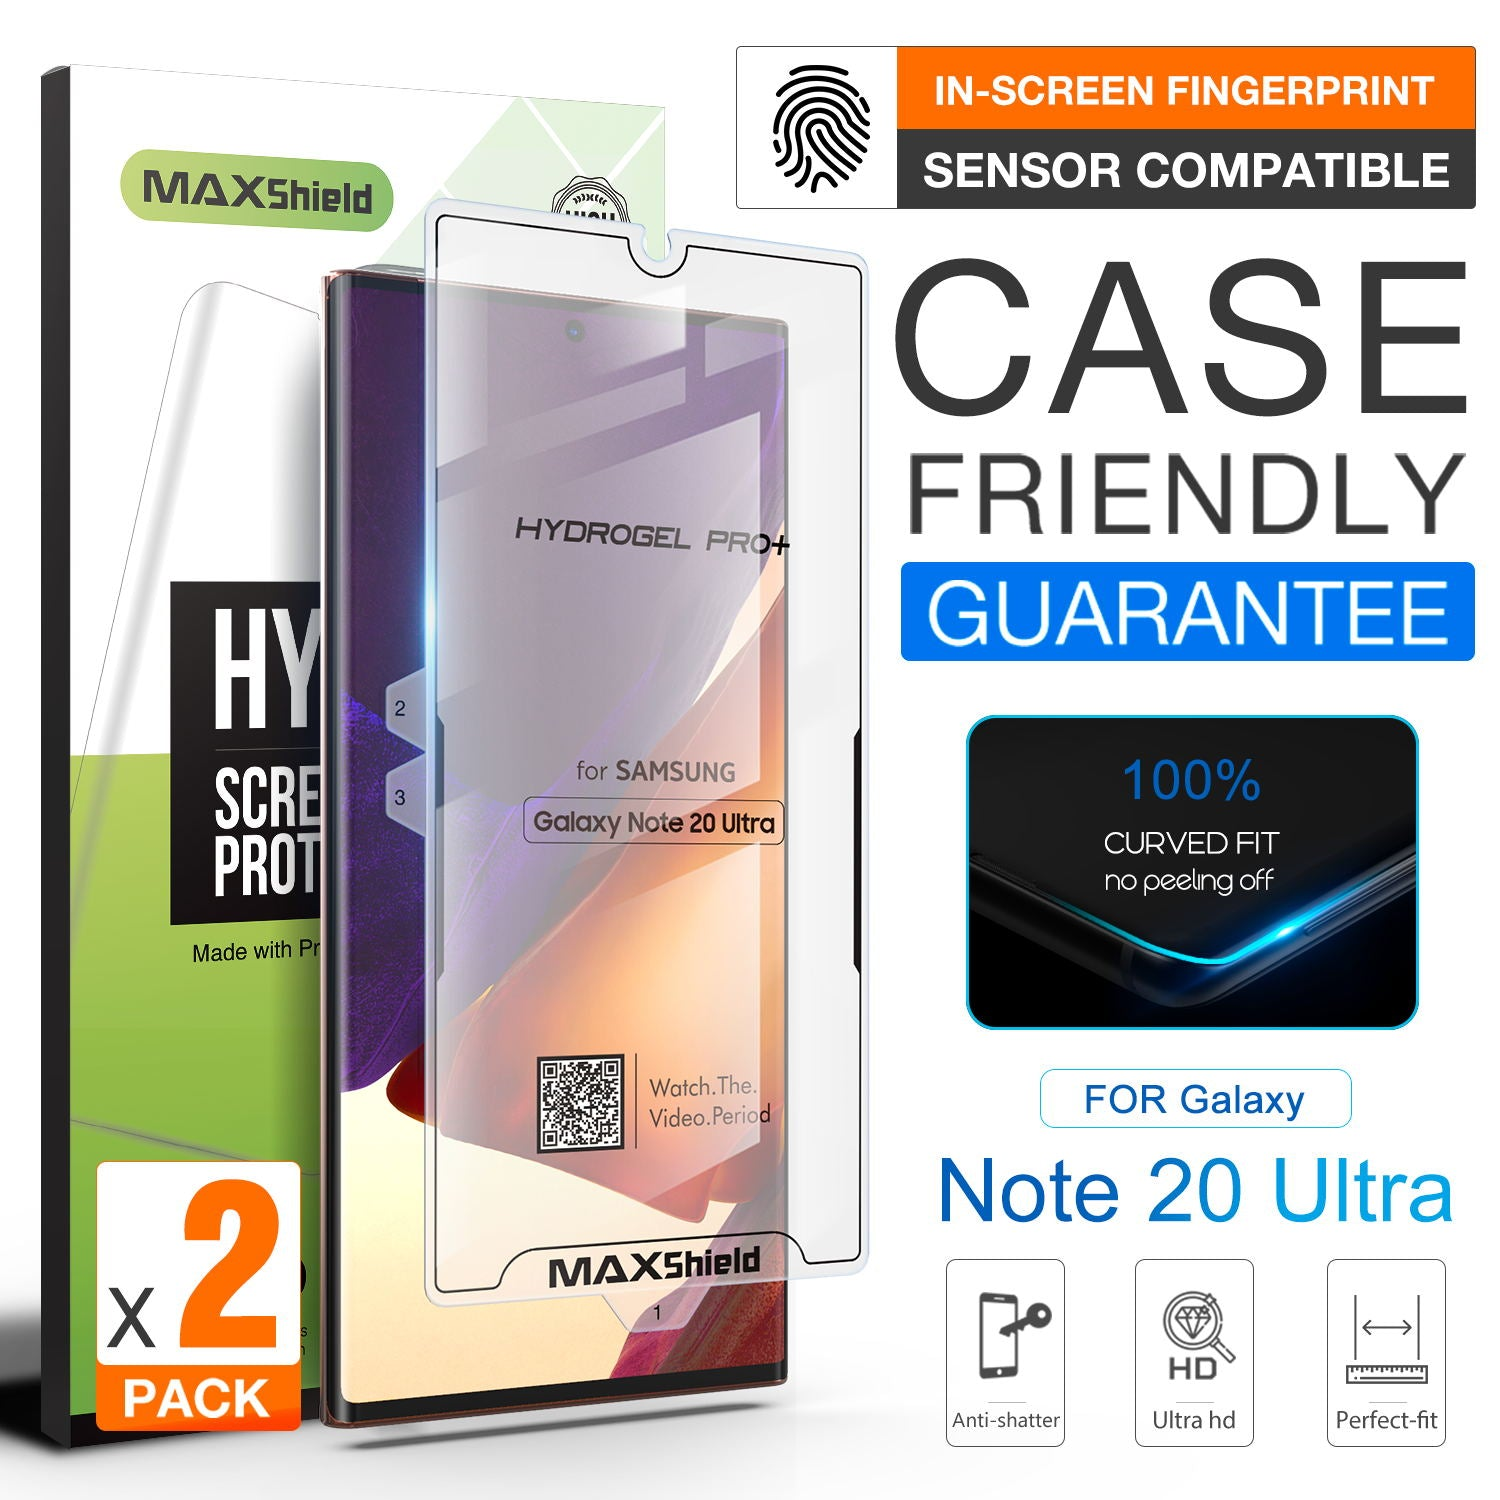 2X GALAXY NOTE 20 4G 5G MAXSHIELD Hydrogel Film Screen Protector